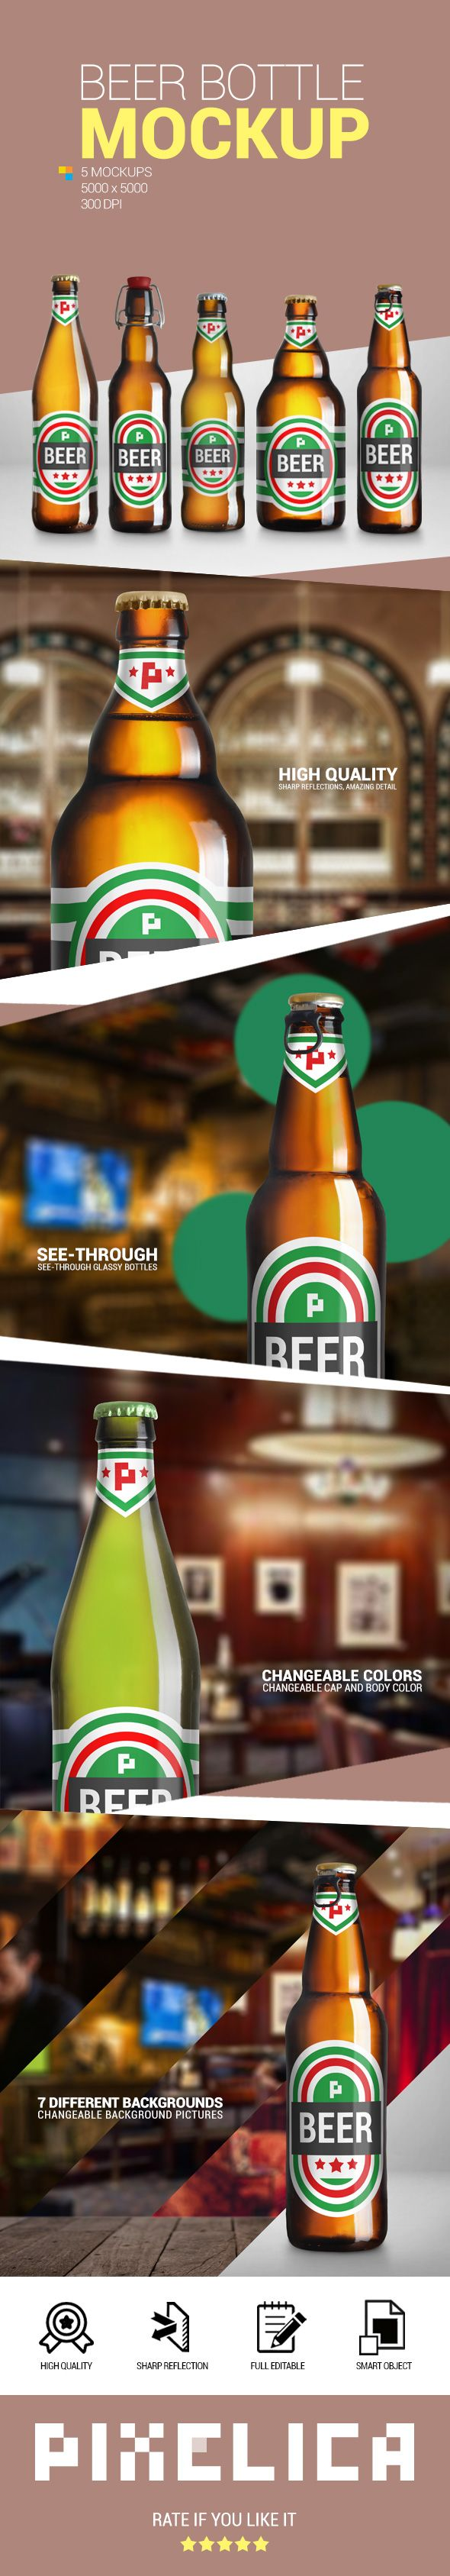 Download Beer Bottle Mockup Pack 2 (With images) | Bottle mockup ...